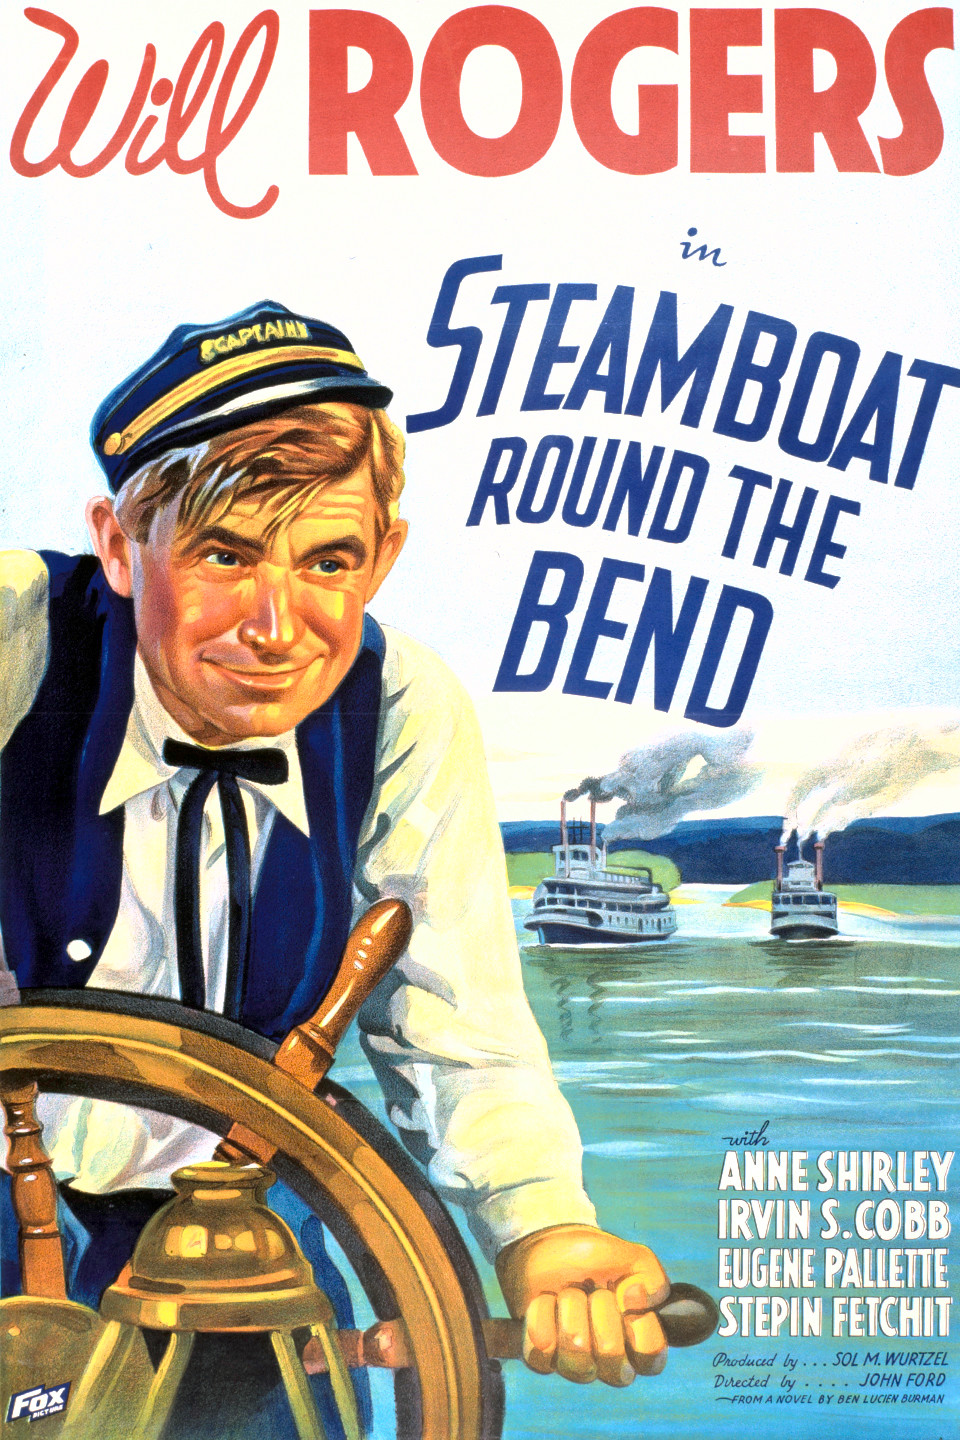 4f75f6f48 Steamboat Round the Bend (1935) - IMDb